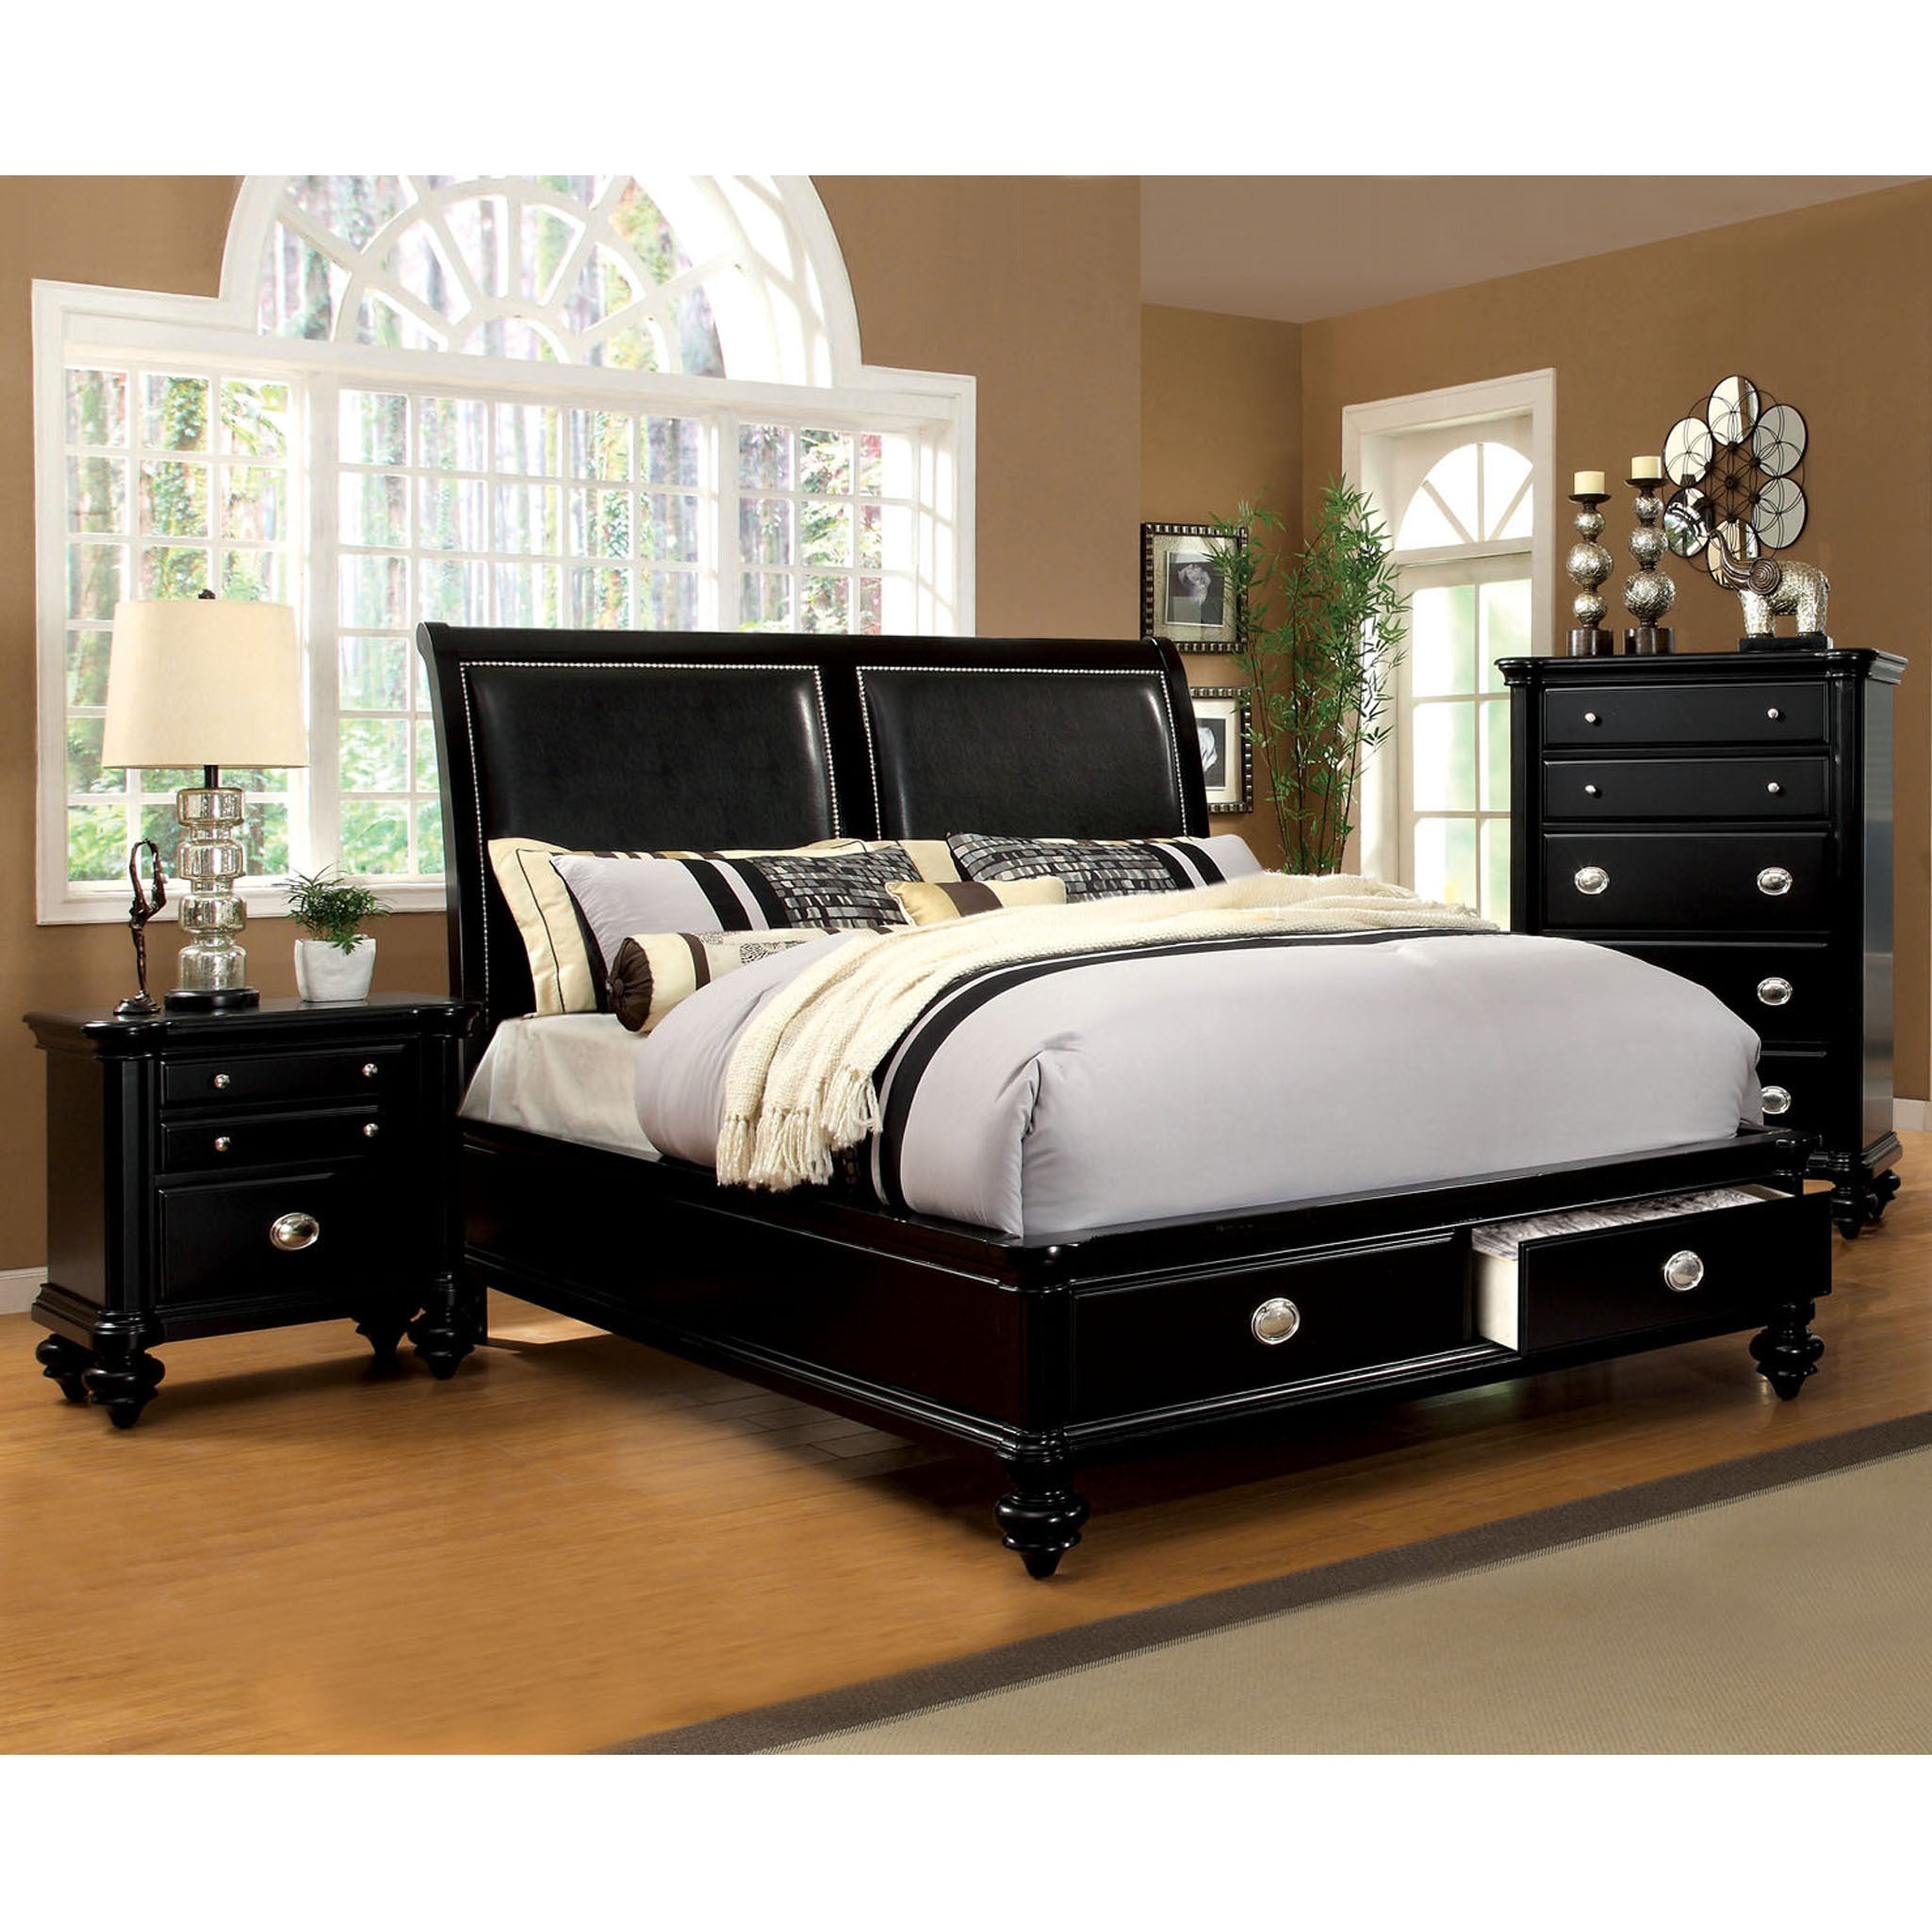 Furniture Of America Modern Platform Bed With Drawers On Free Shipping Today 9237371